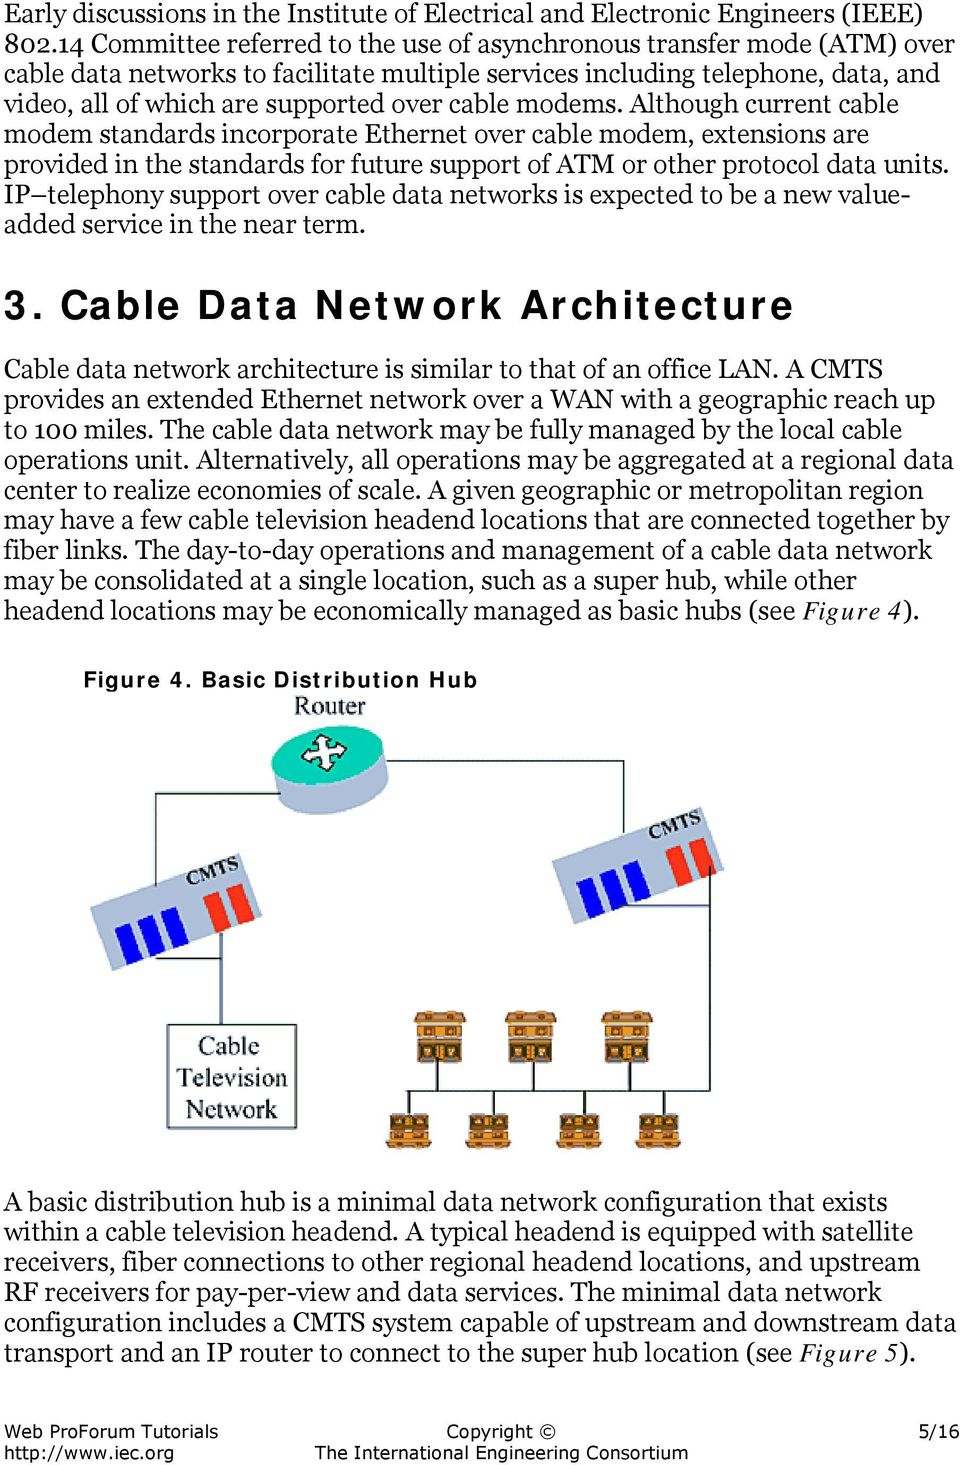 cable modems. Although current cable modem standards incorporate Ethernet over cable modem, extensions are provided in the standards for future support of ATM or other protocol data units.